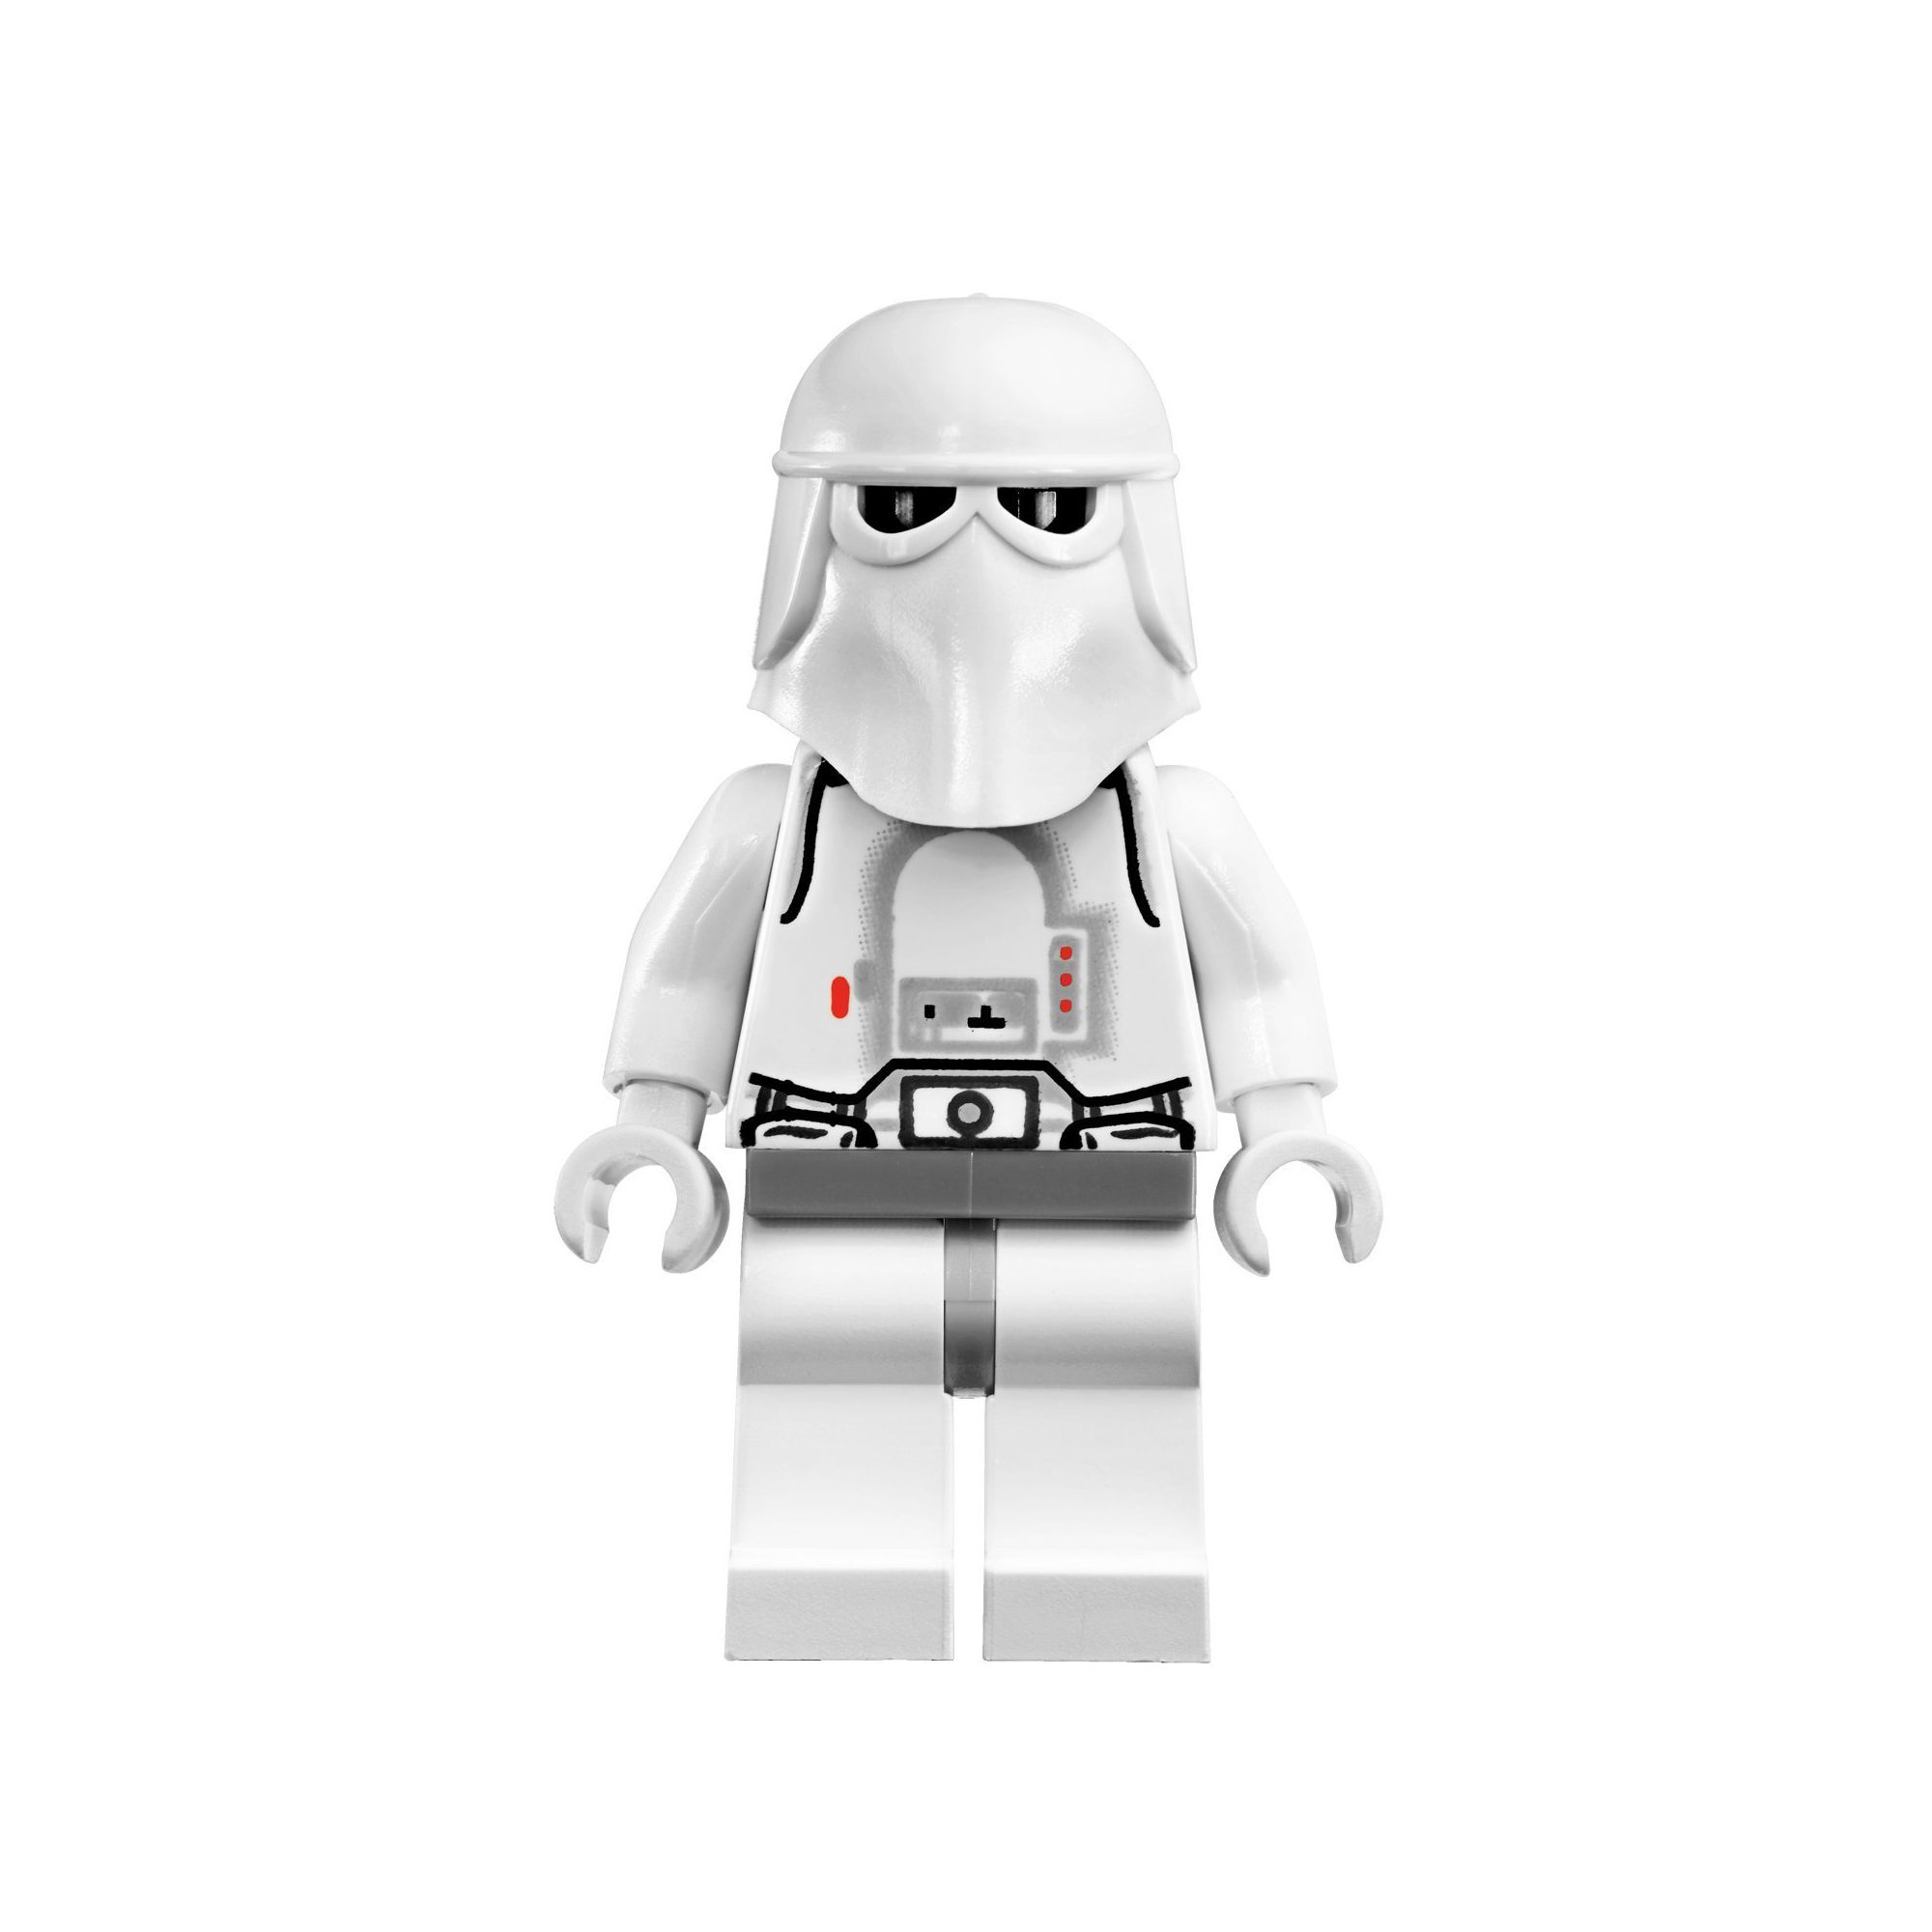 m_9509_snow_trooper_1.jpg